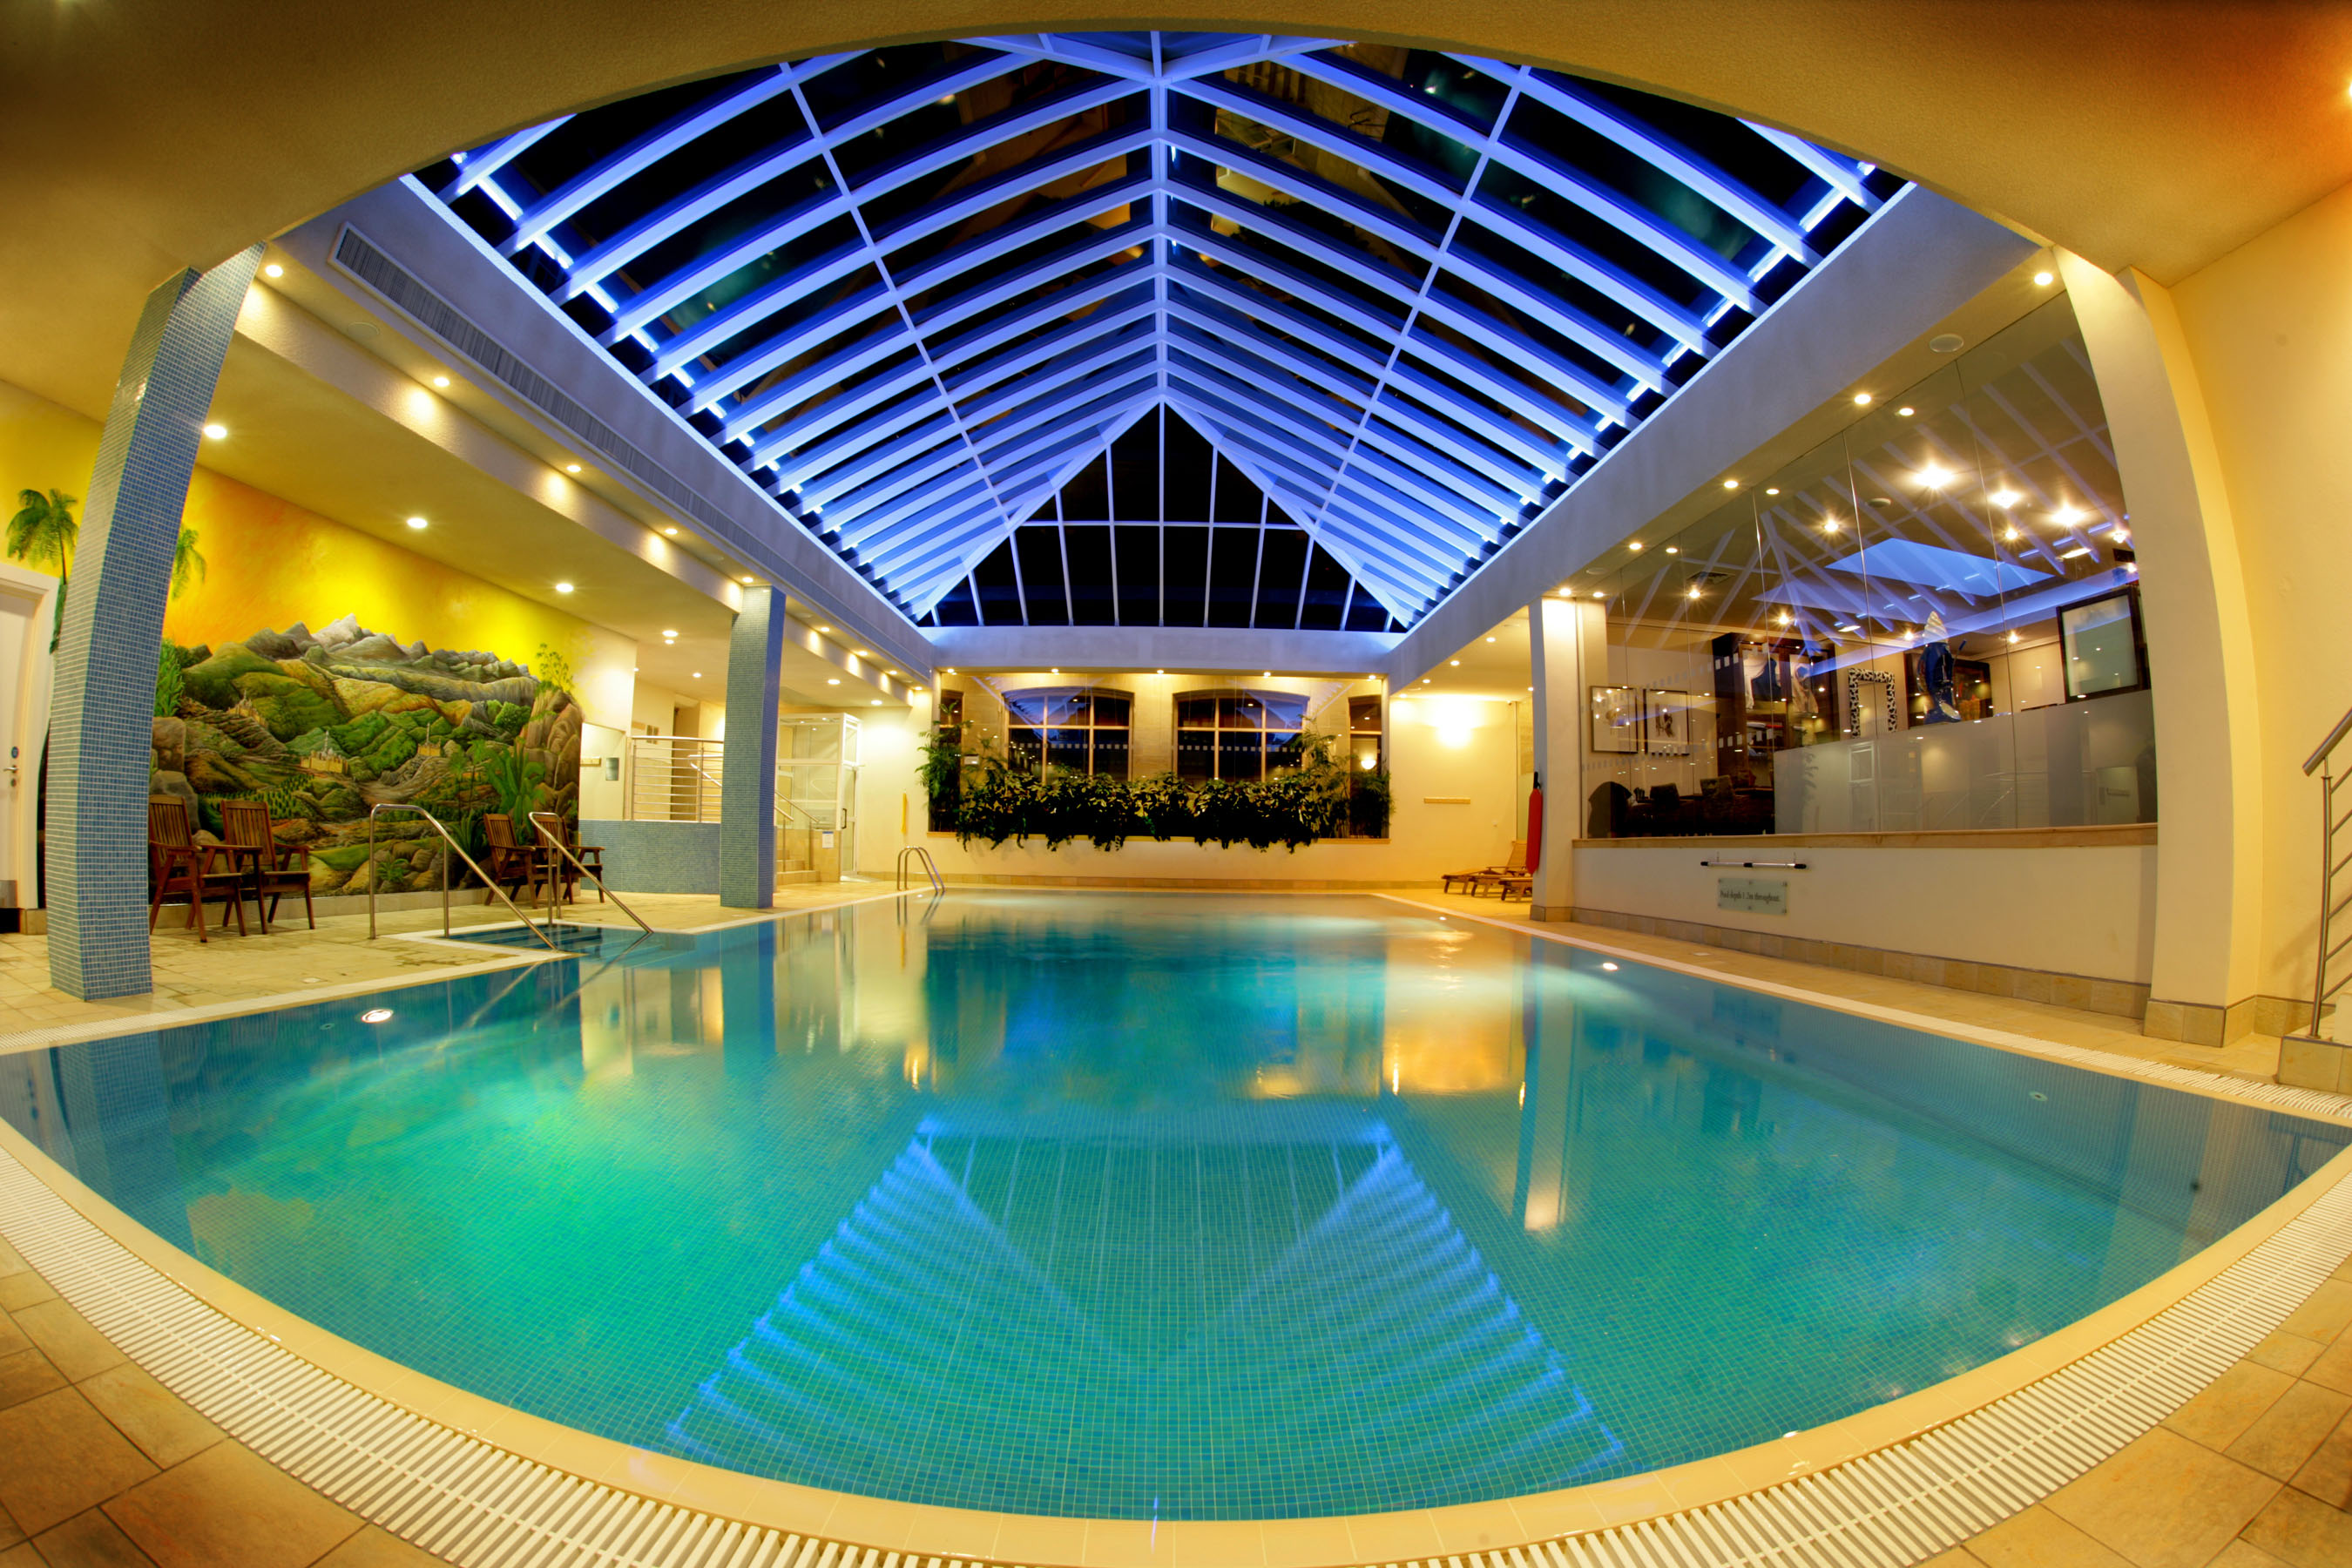 Indoor swimming pool ideas homesfeed for Best house with swimming pool